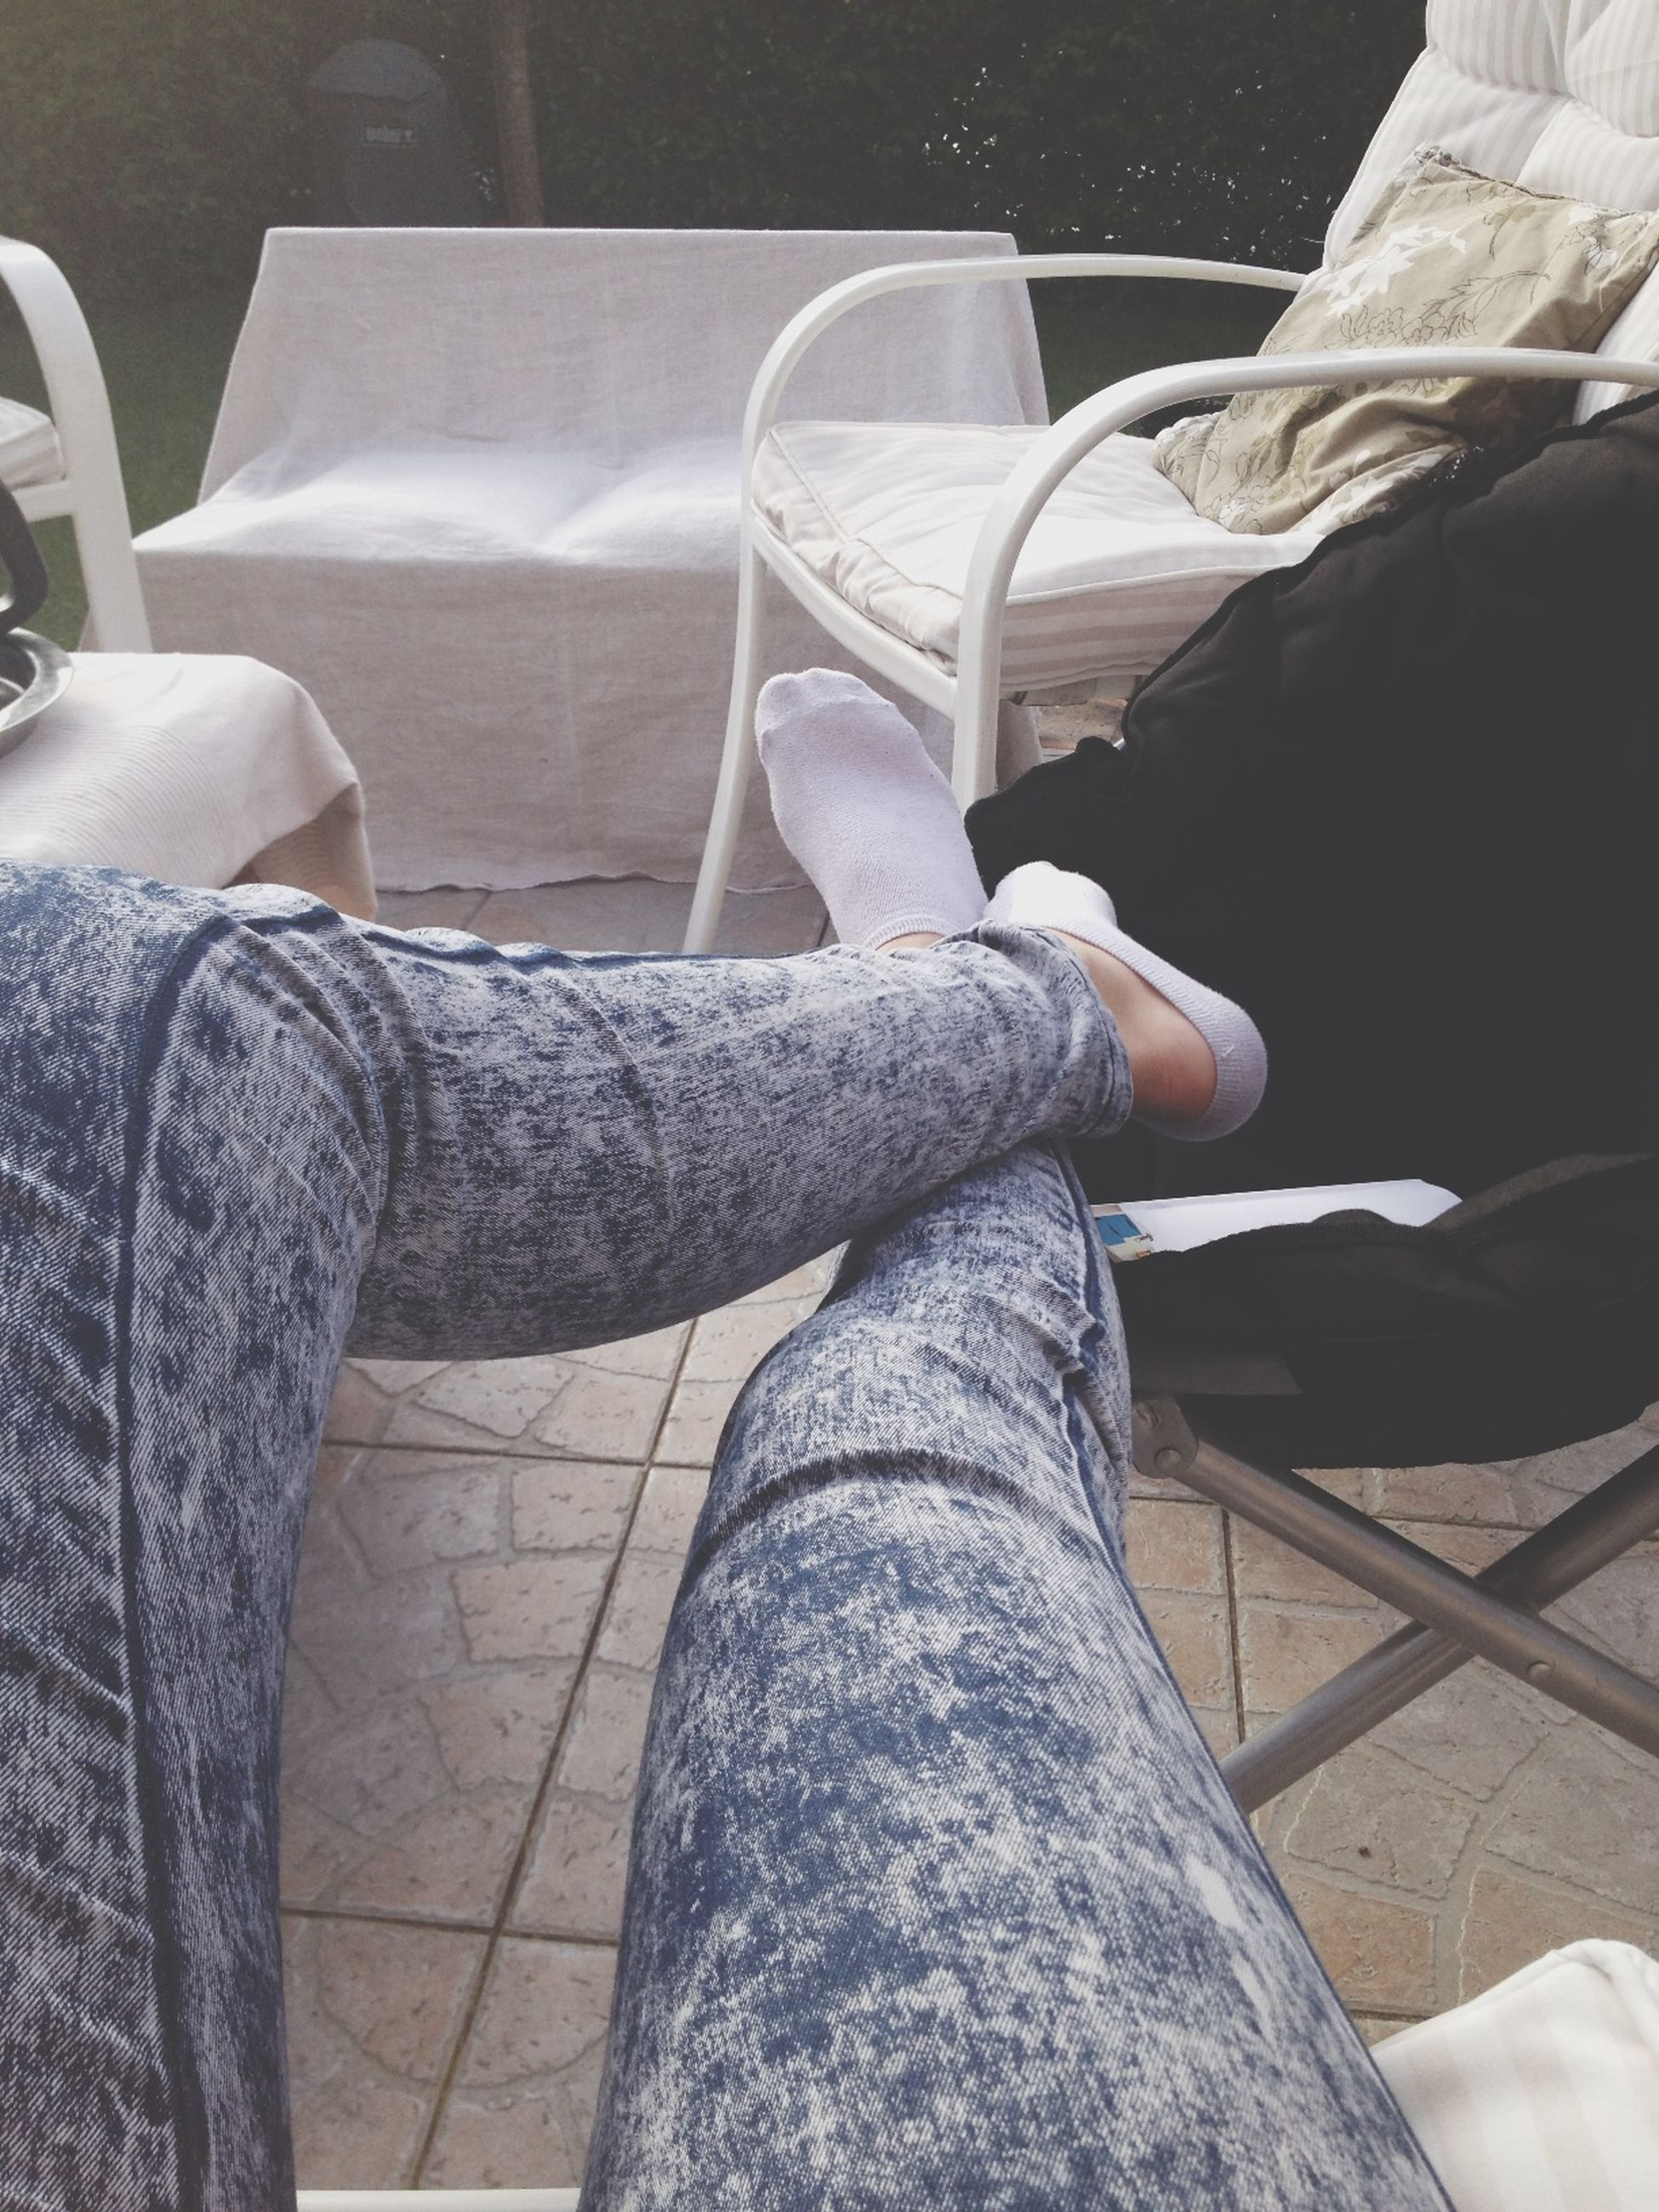 low section, person, jeans, shoe, indoors, personal perspective, men, part of, lifestyles, sitting, human foot, footwear, casual clothing, relaxation, close-up, legs crossed at ankle, standing